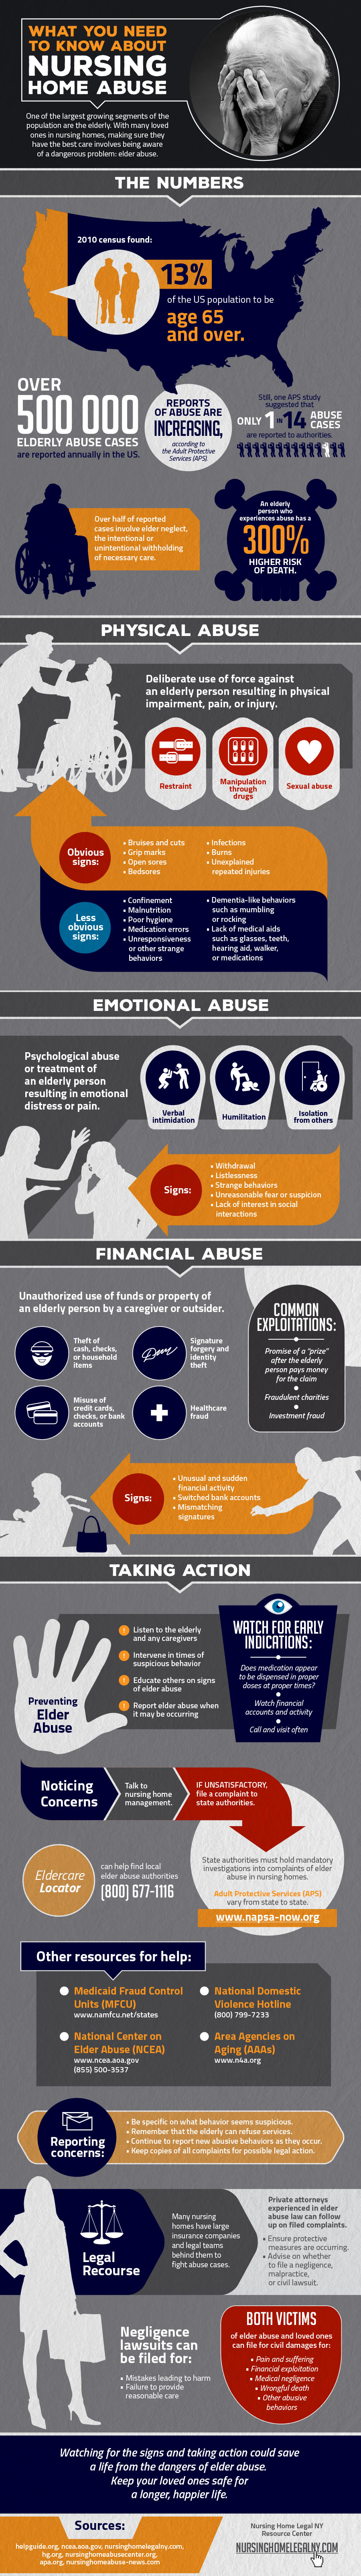 What You Need To Know About Nursing Home Abuse